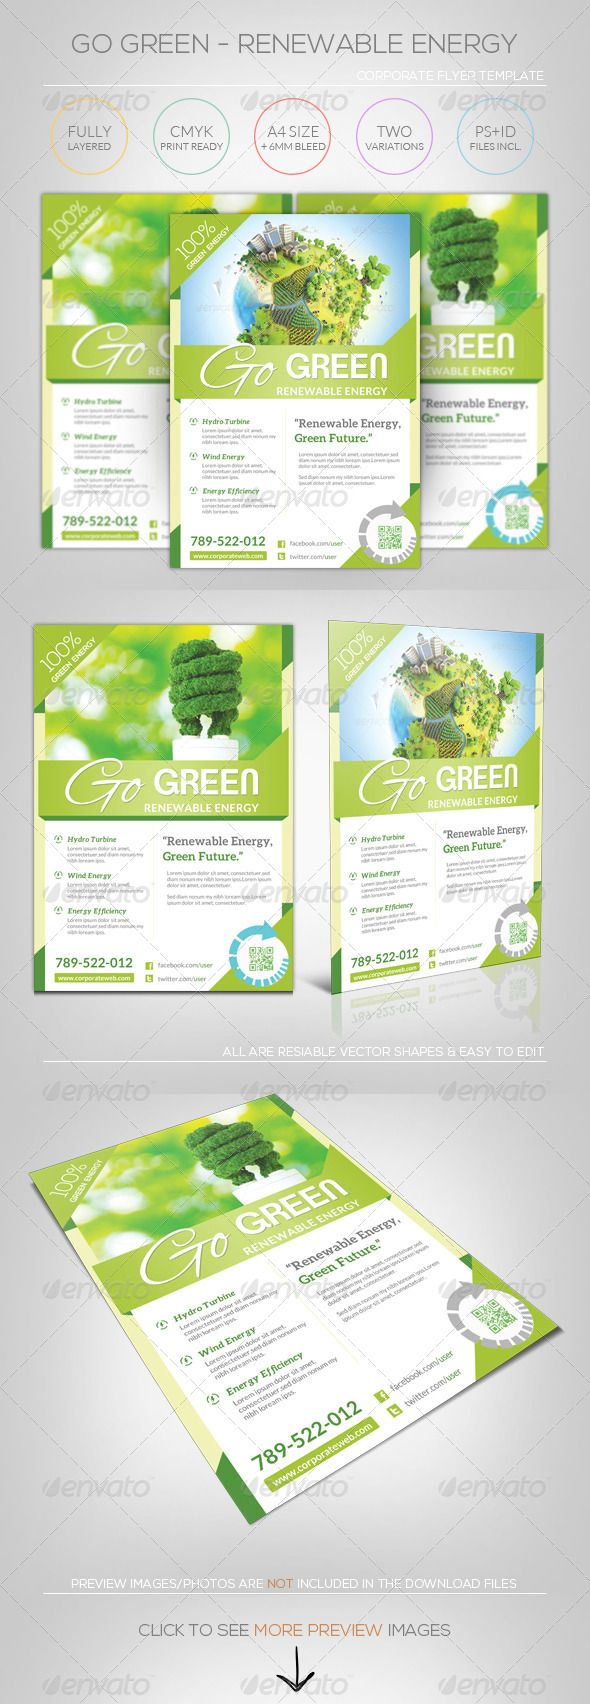 renewable energy go green flyer template recycling logos and fonts. Black Bedroom Furniture Sets. Home Design Ideas